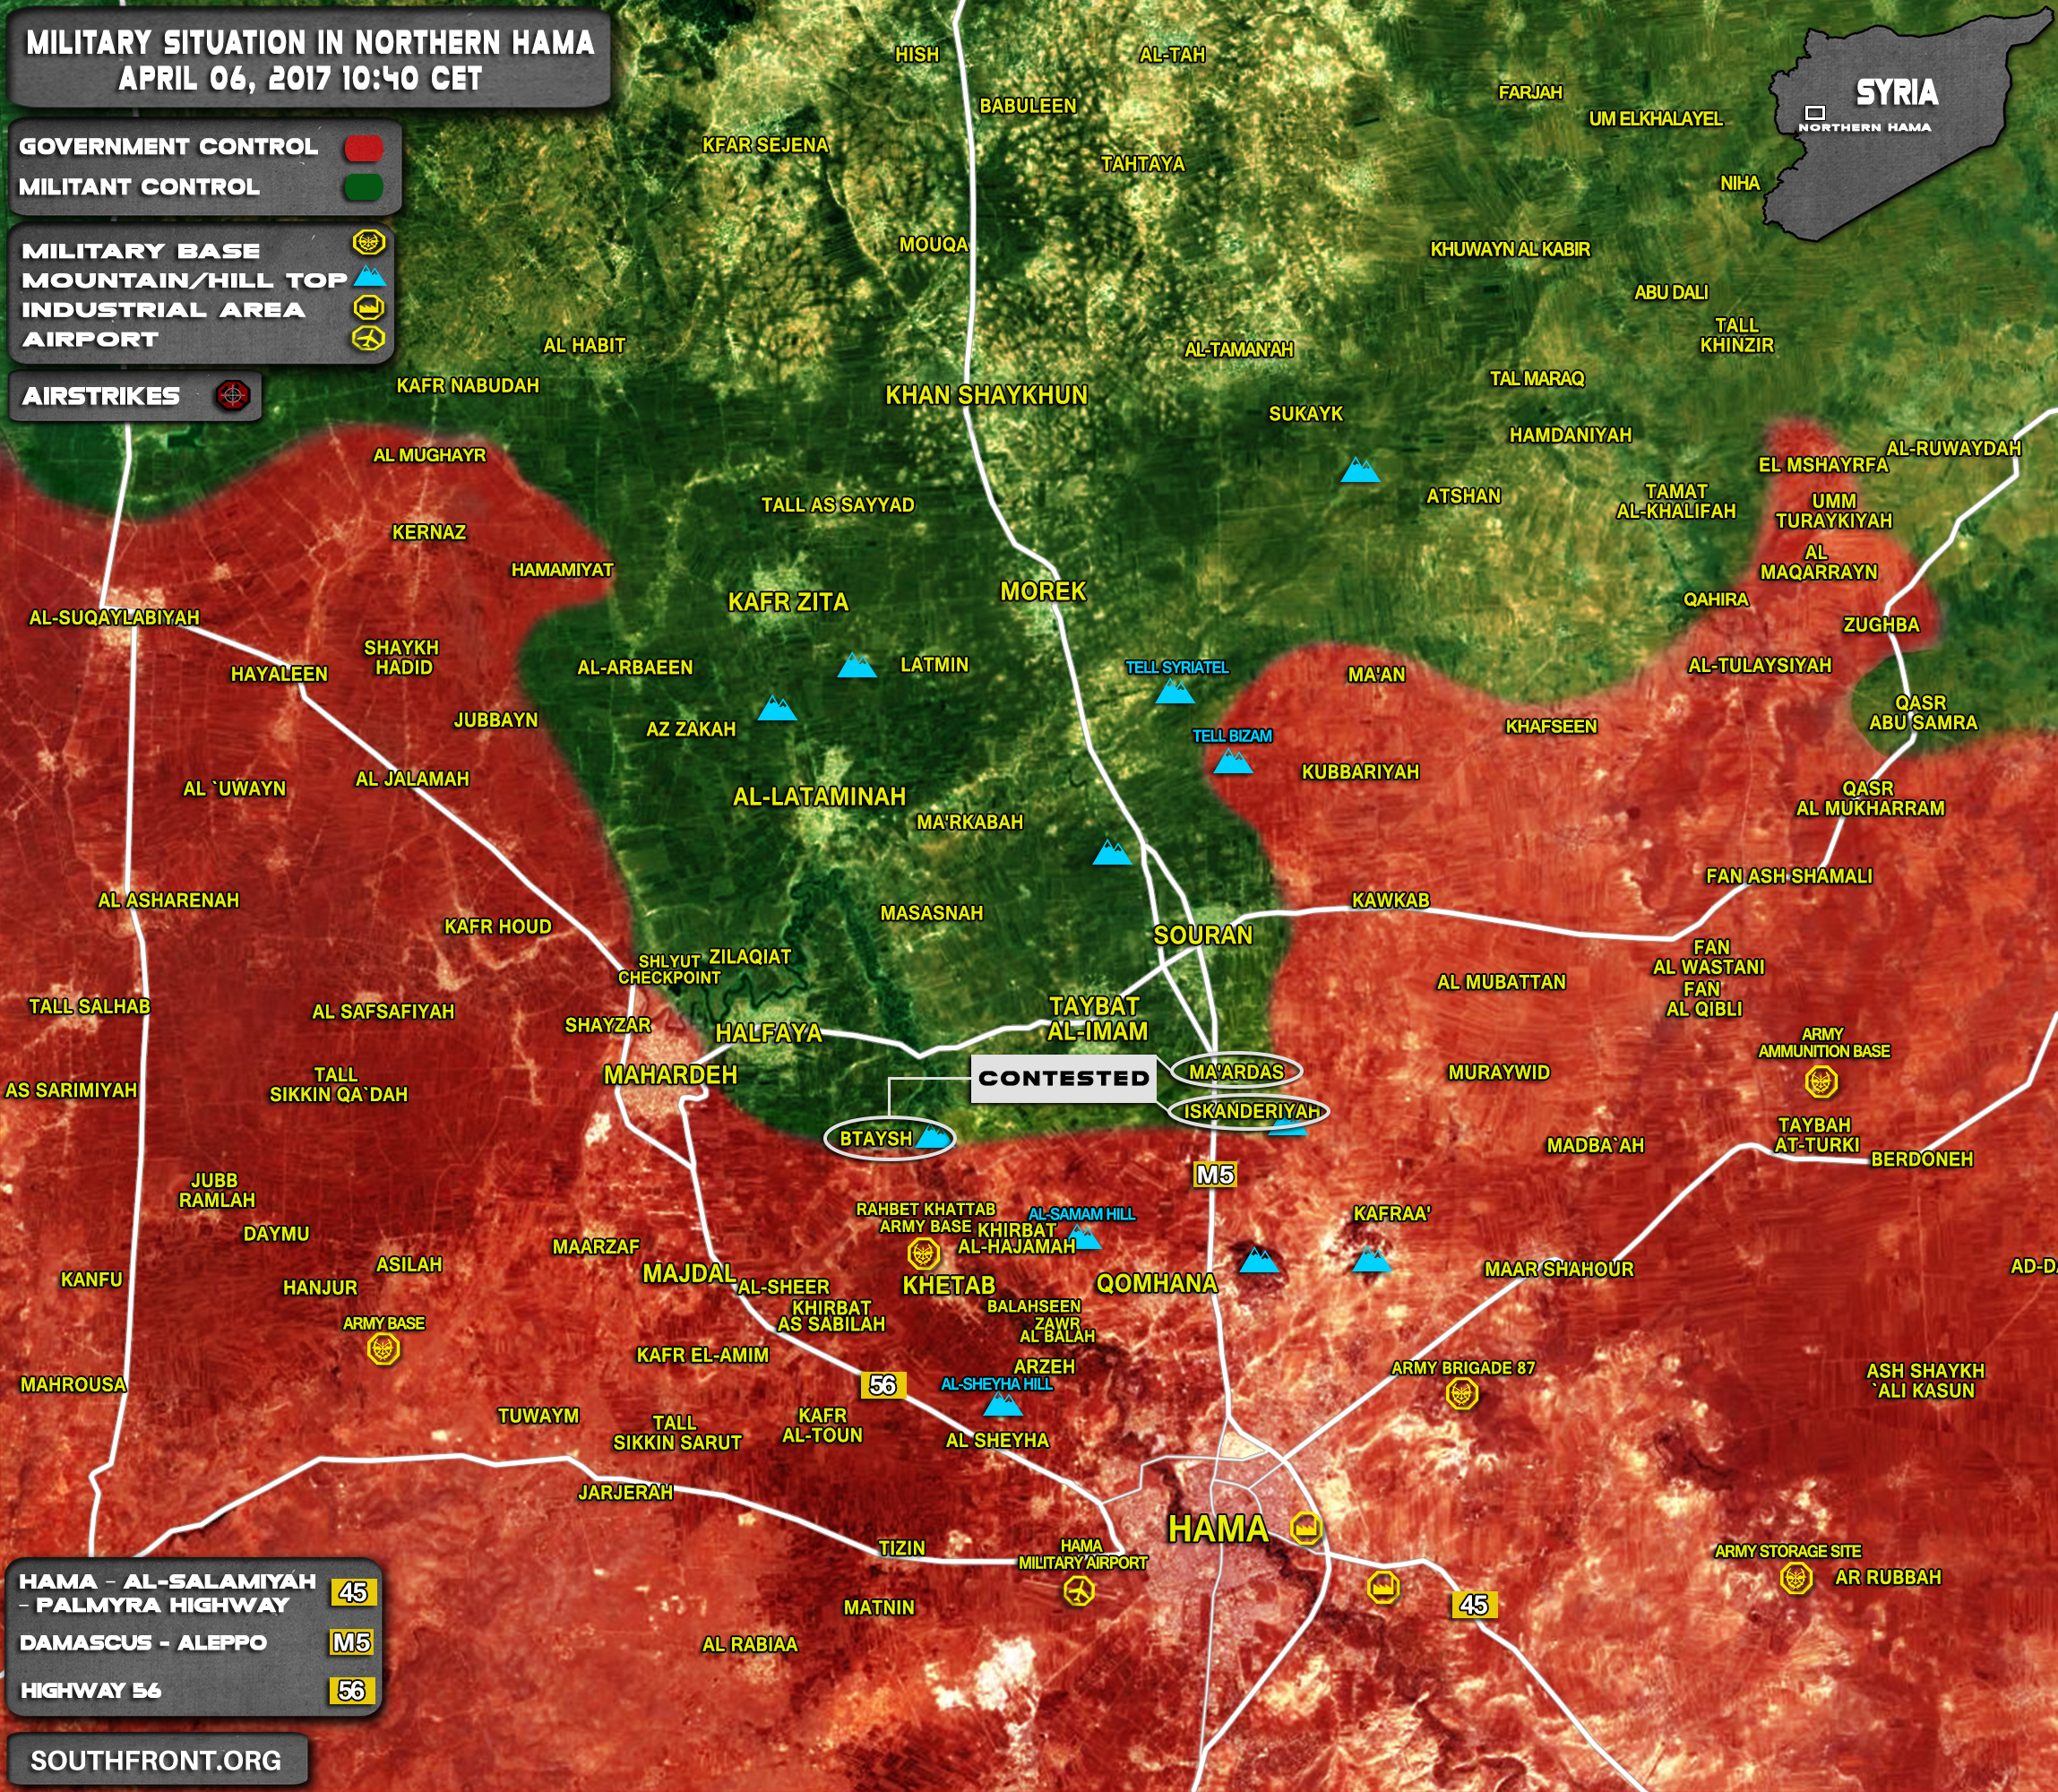 Overview Of Military Situation In Northern Hama On April 6, 2017